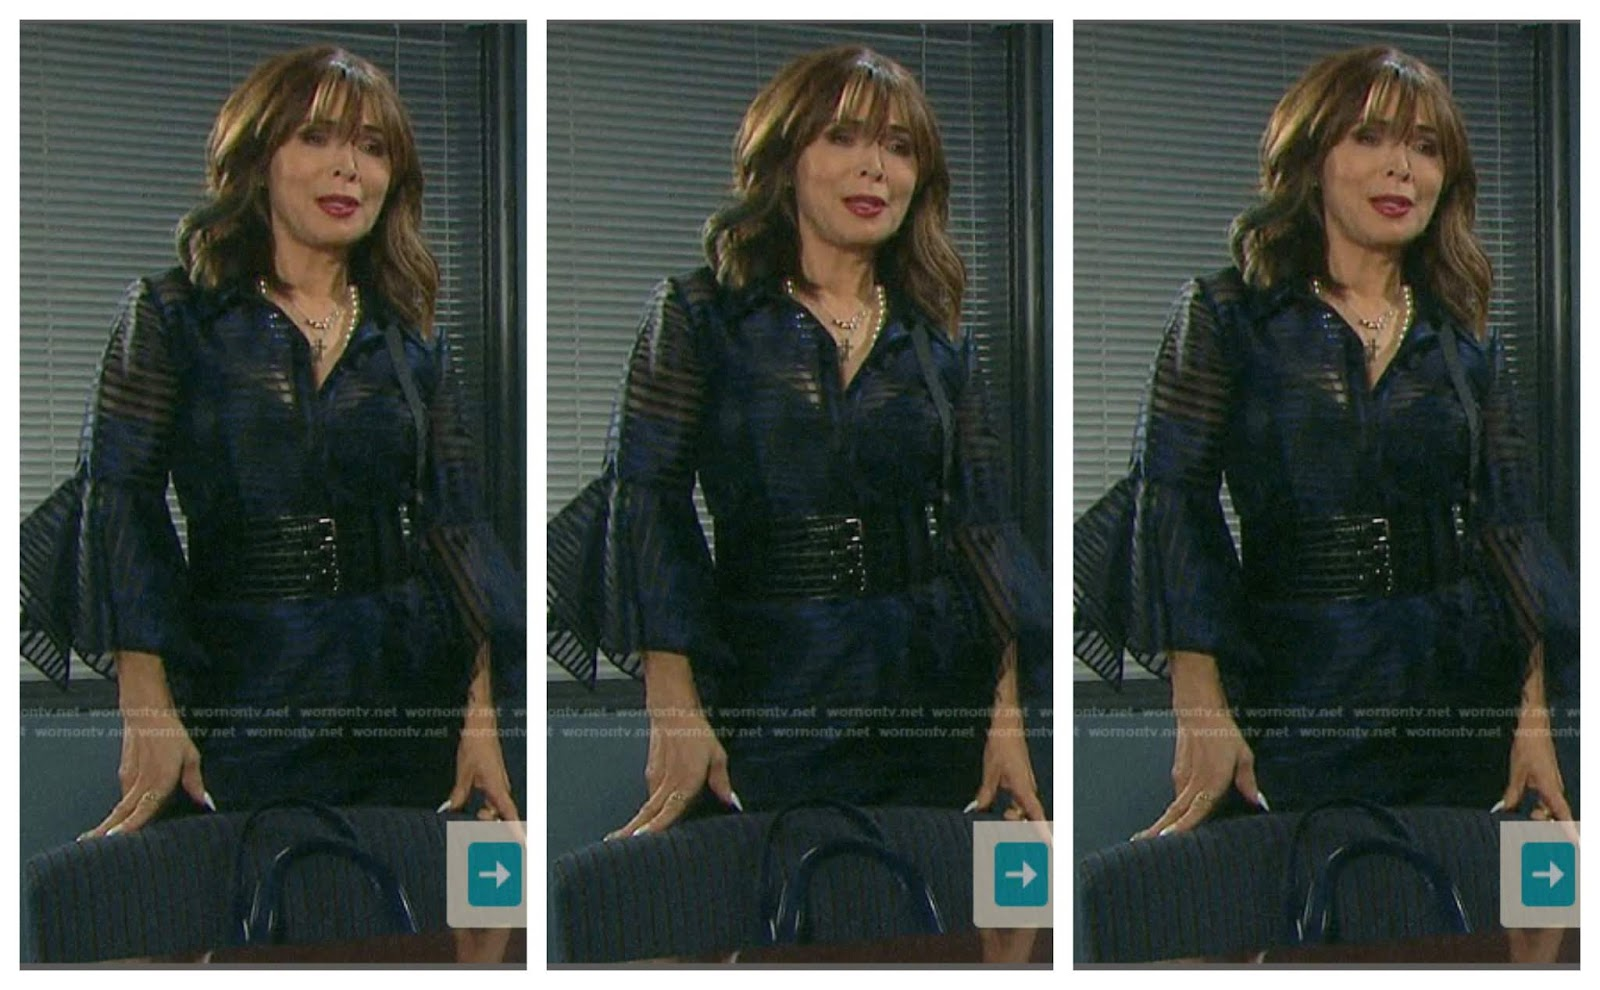 Best Dressed Star Of The Week Days Of Our Lives Lauren Koslow Soap Opera News She also portrayed the role of lindsey wells on cbs soap opera, the young and the restless, from 1984 to 1986. days of our lives lauren koslow